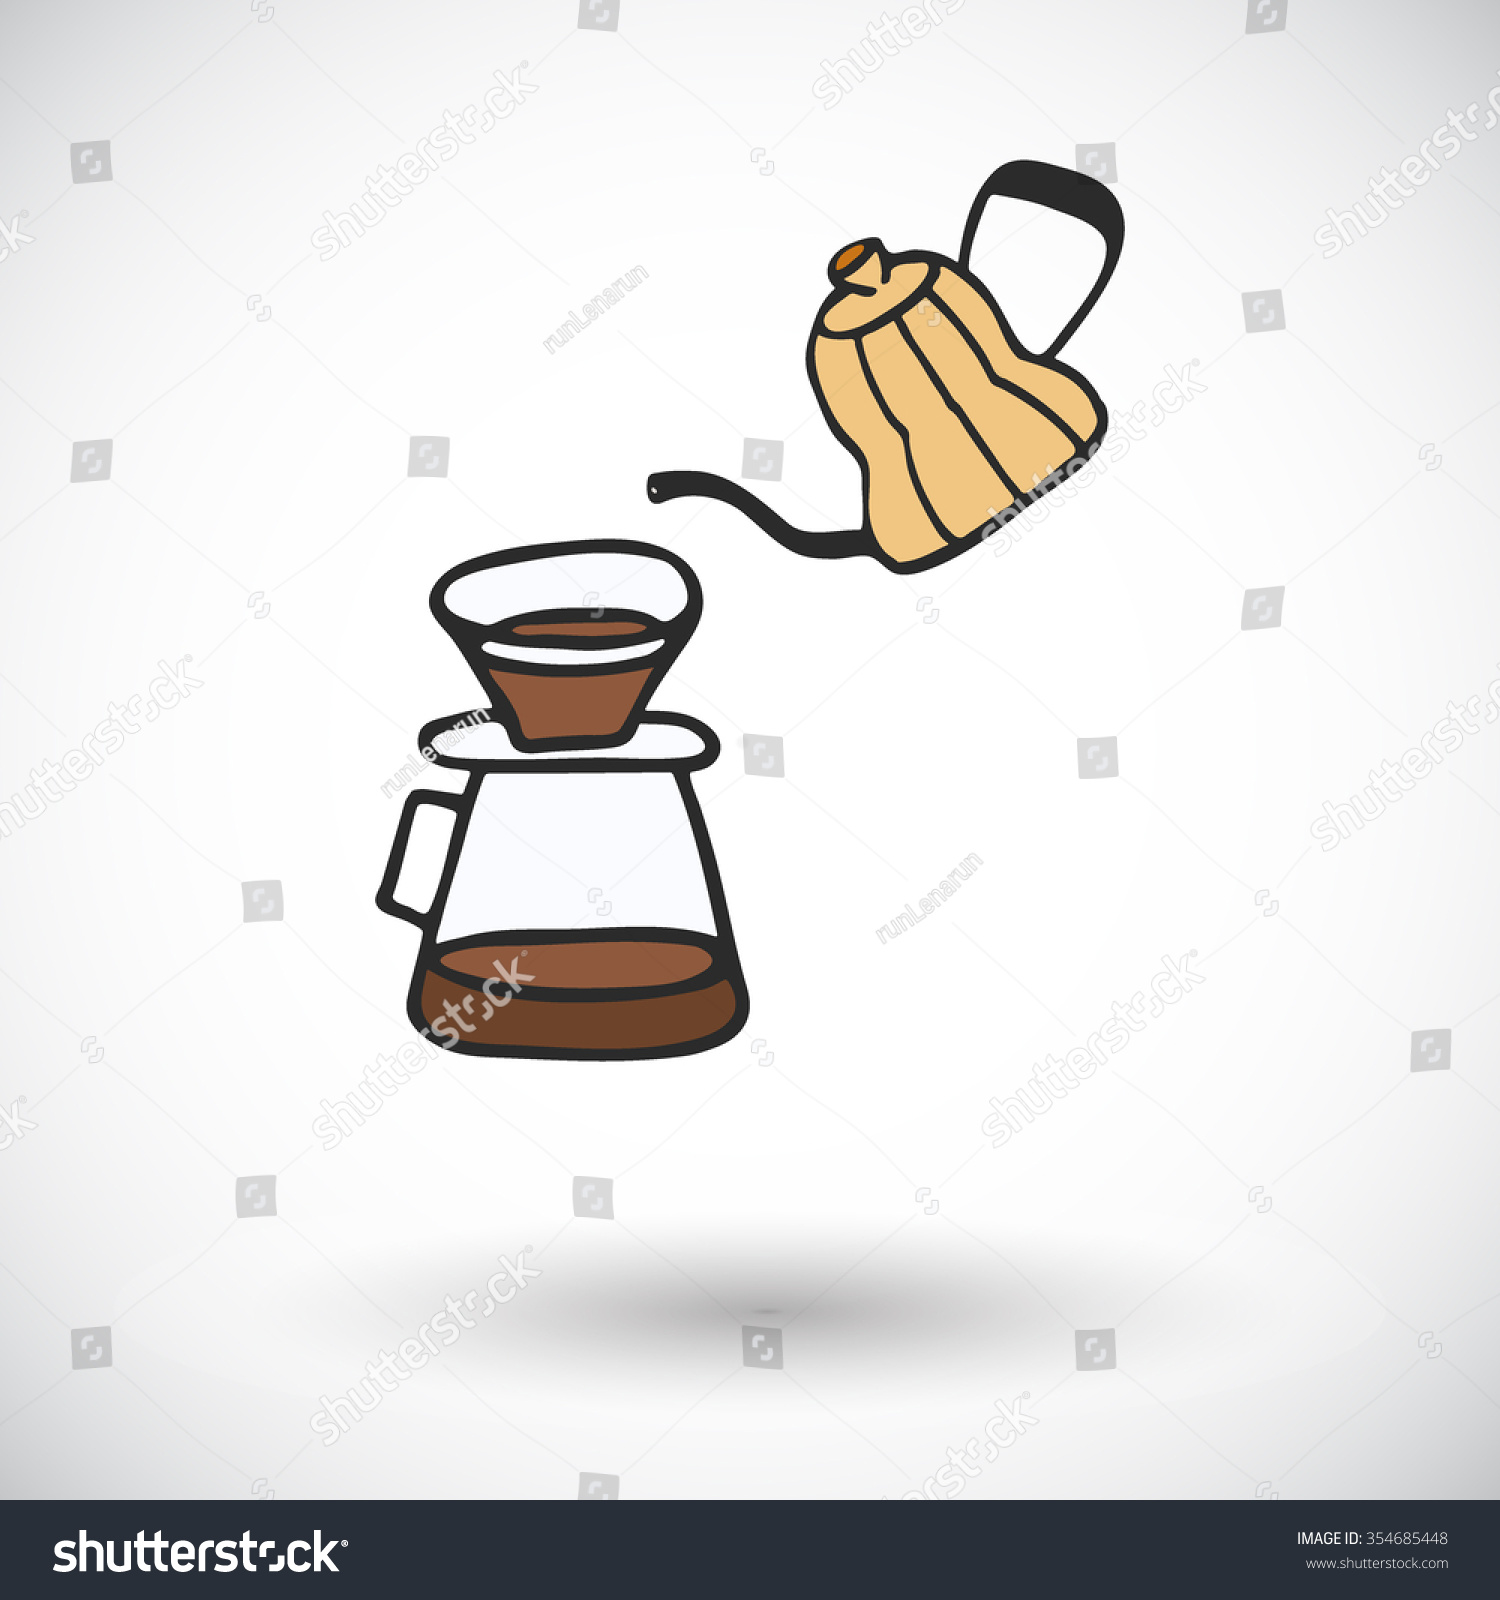 Pour Over Coffee Maker Handdrawn Coffee Stock Vector HD (Royalty ...